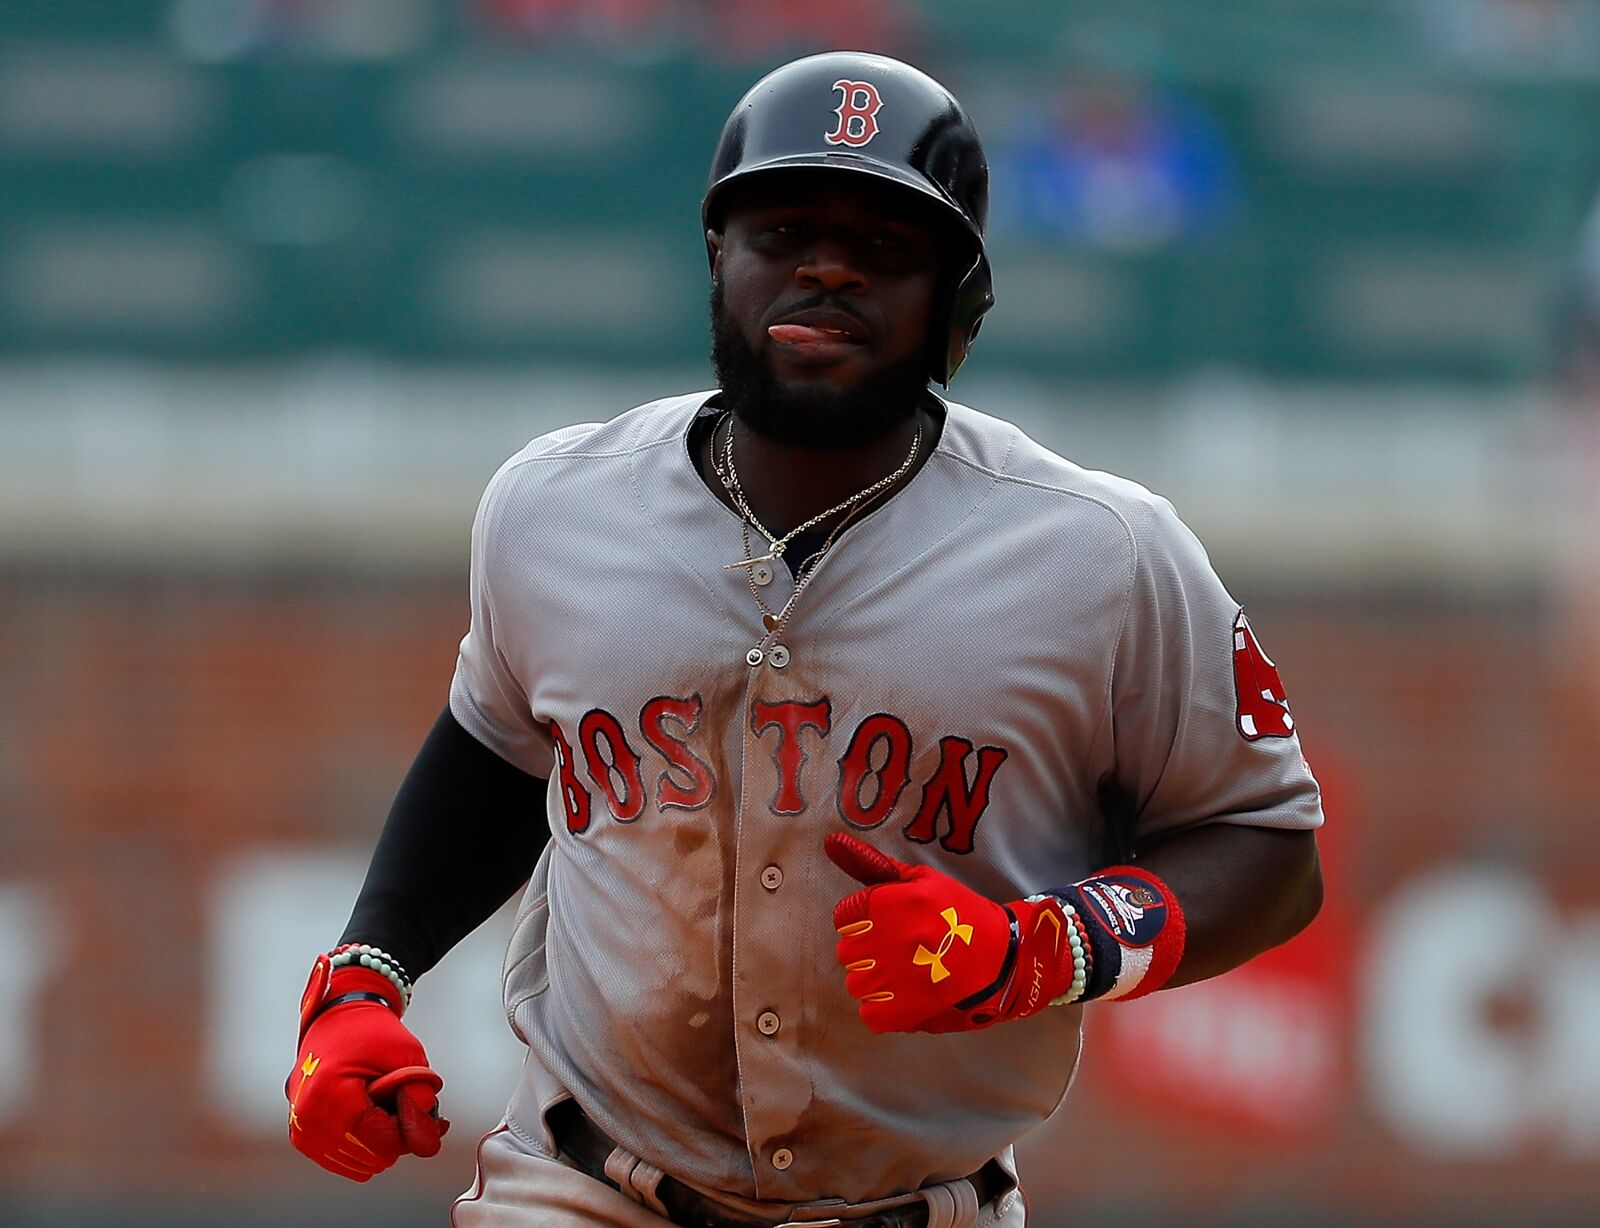 bc6e1329a Welcome to the Boston Red Sox Brandon Phillips